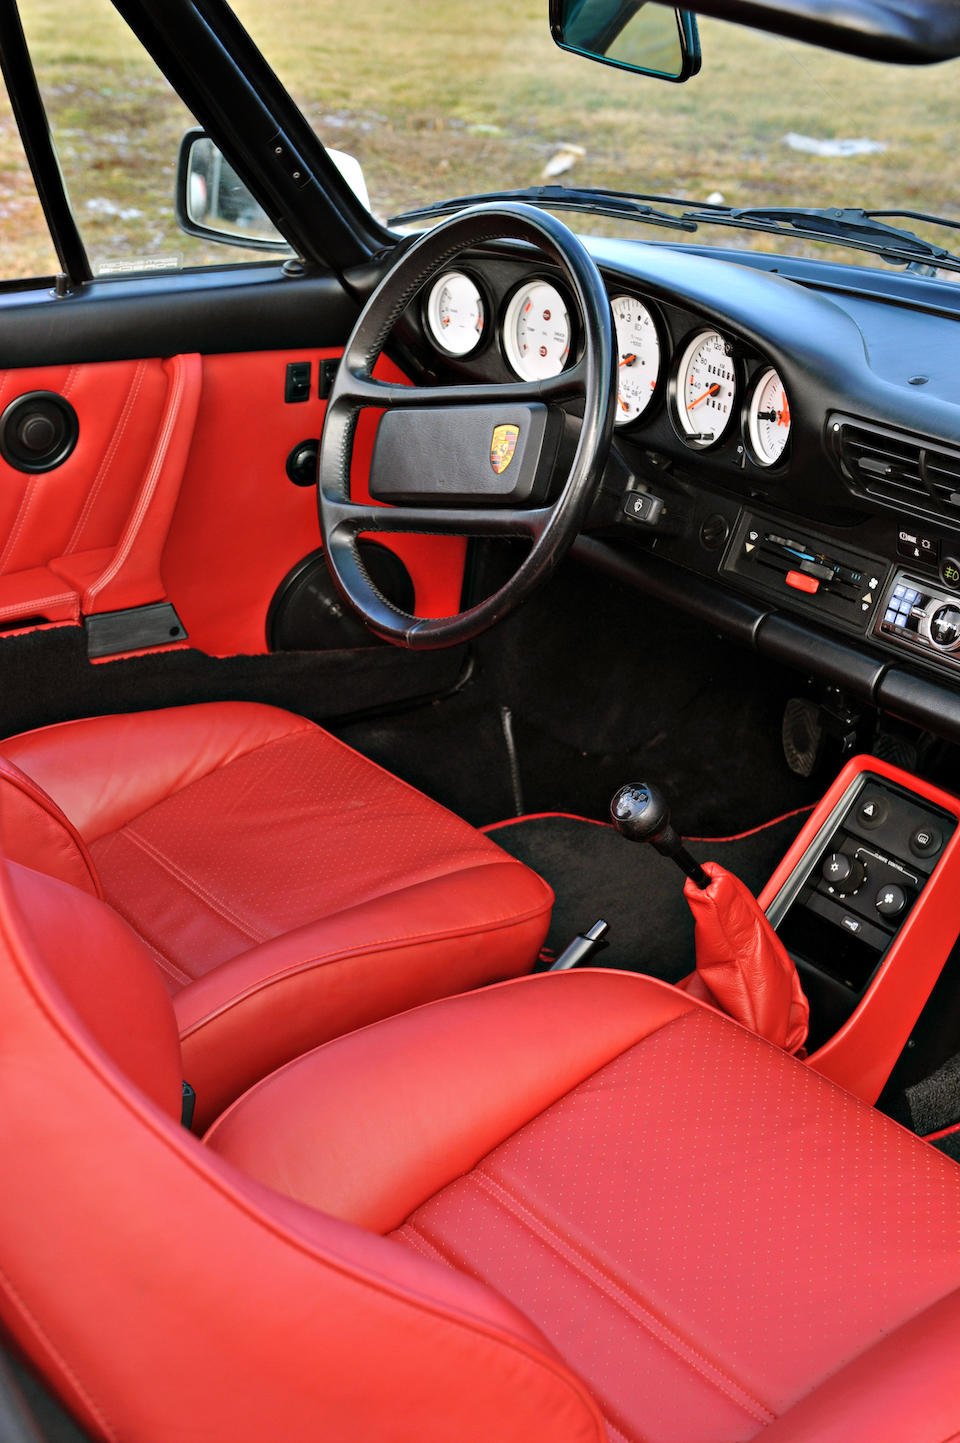 <B>1989 PORSCHE 930S TURBO SLANT NOSE CABRIOLET<br /><br /></B>VIN. WPOEB0935KS070209<BR />Engine no. 68K00384 (M930/68)